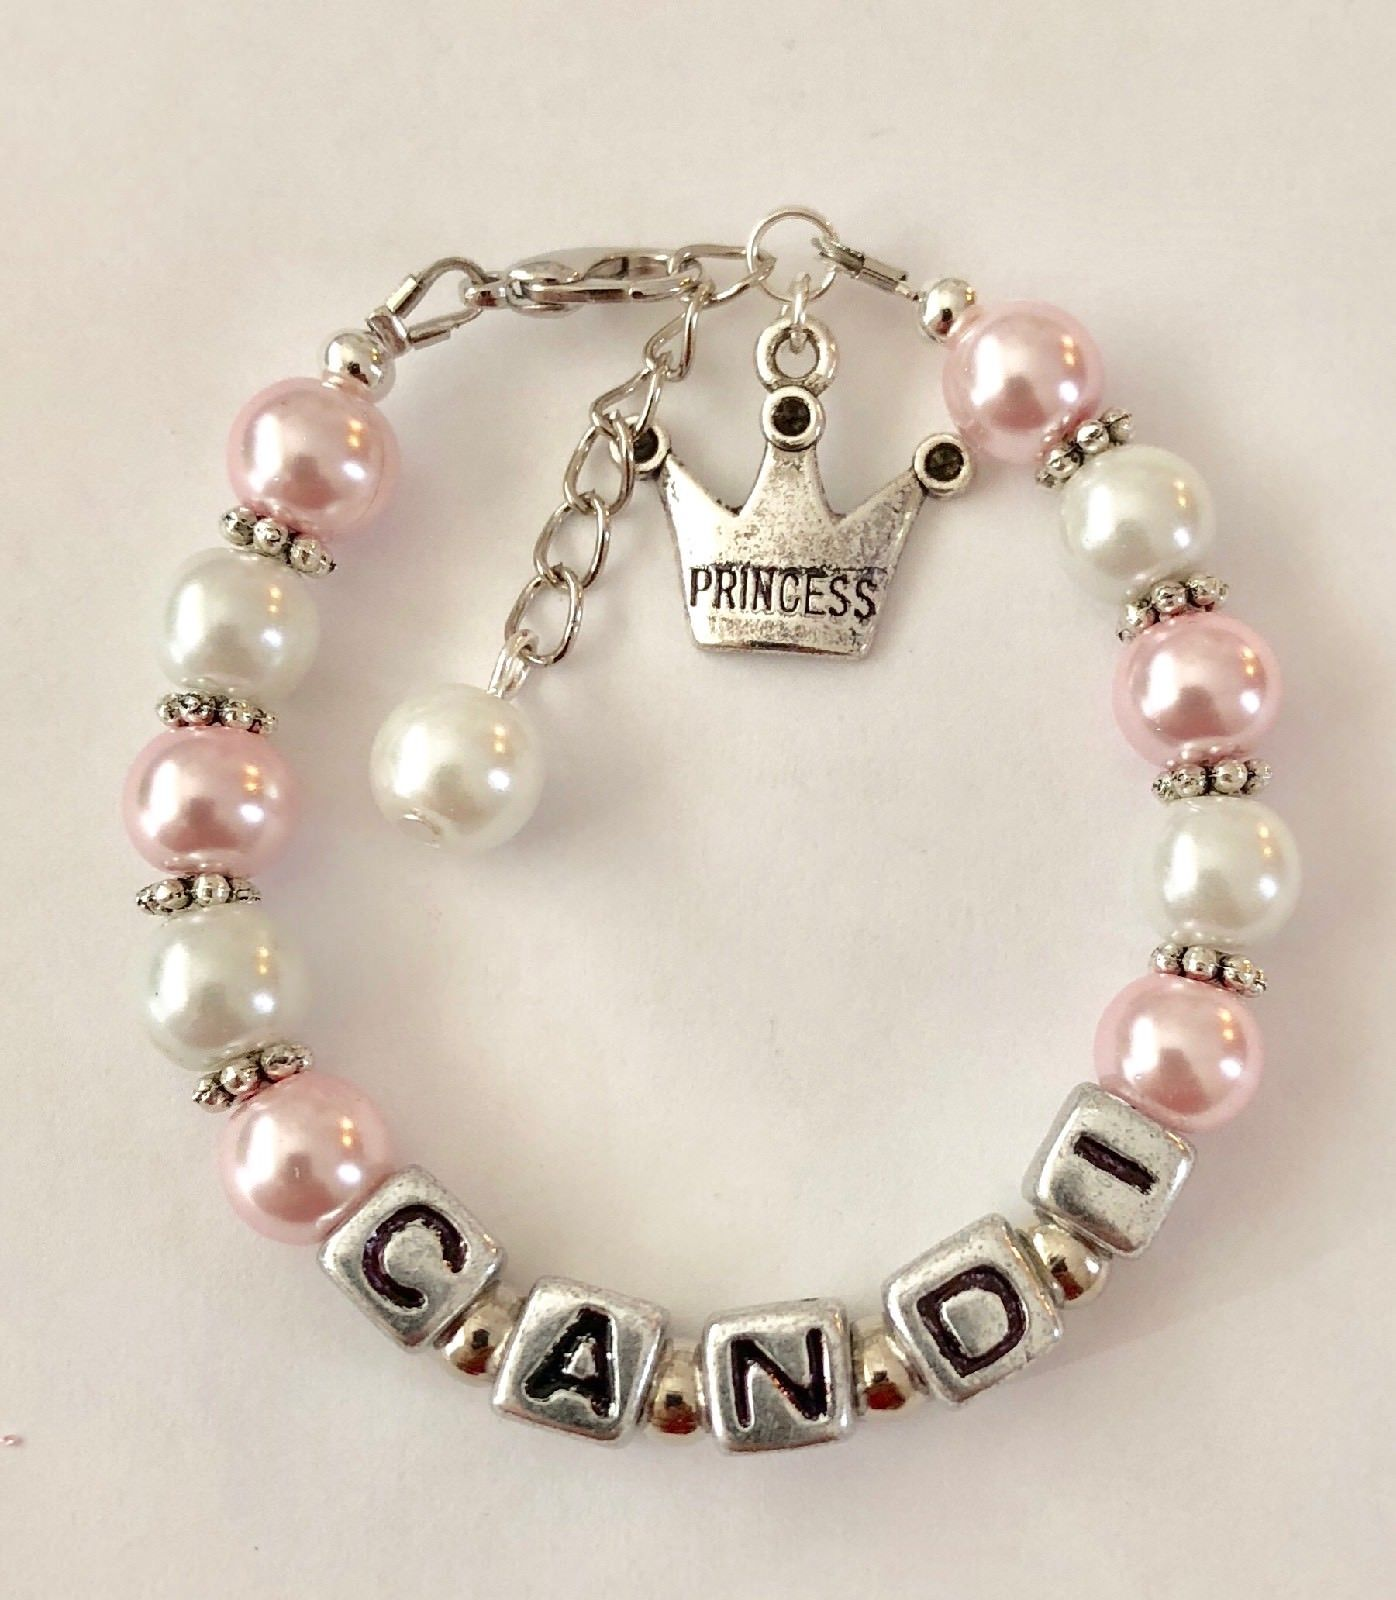 Princess Personalized Girl's Charm Bracelet (Made to Order)